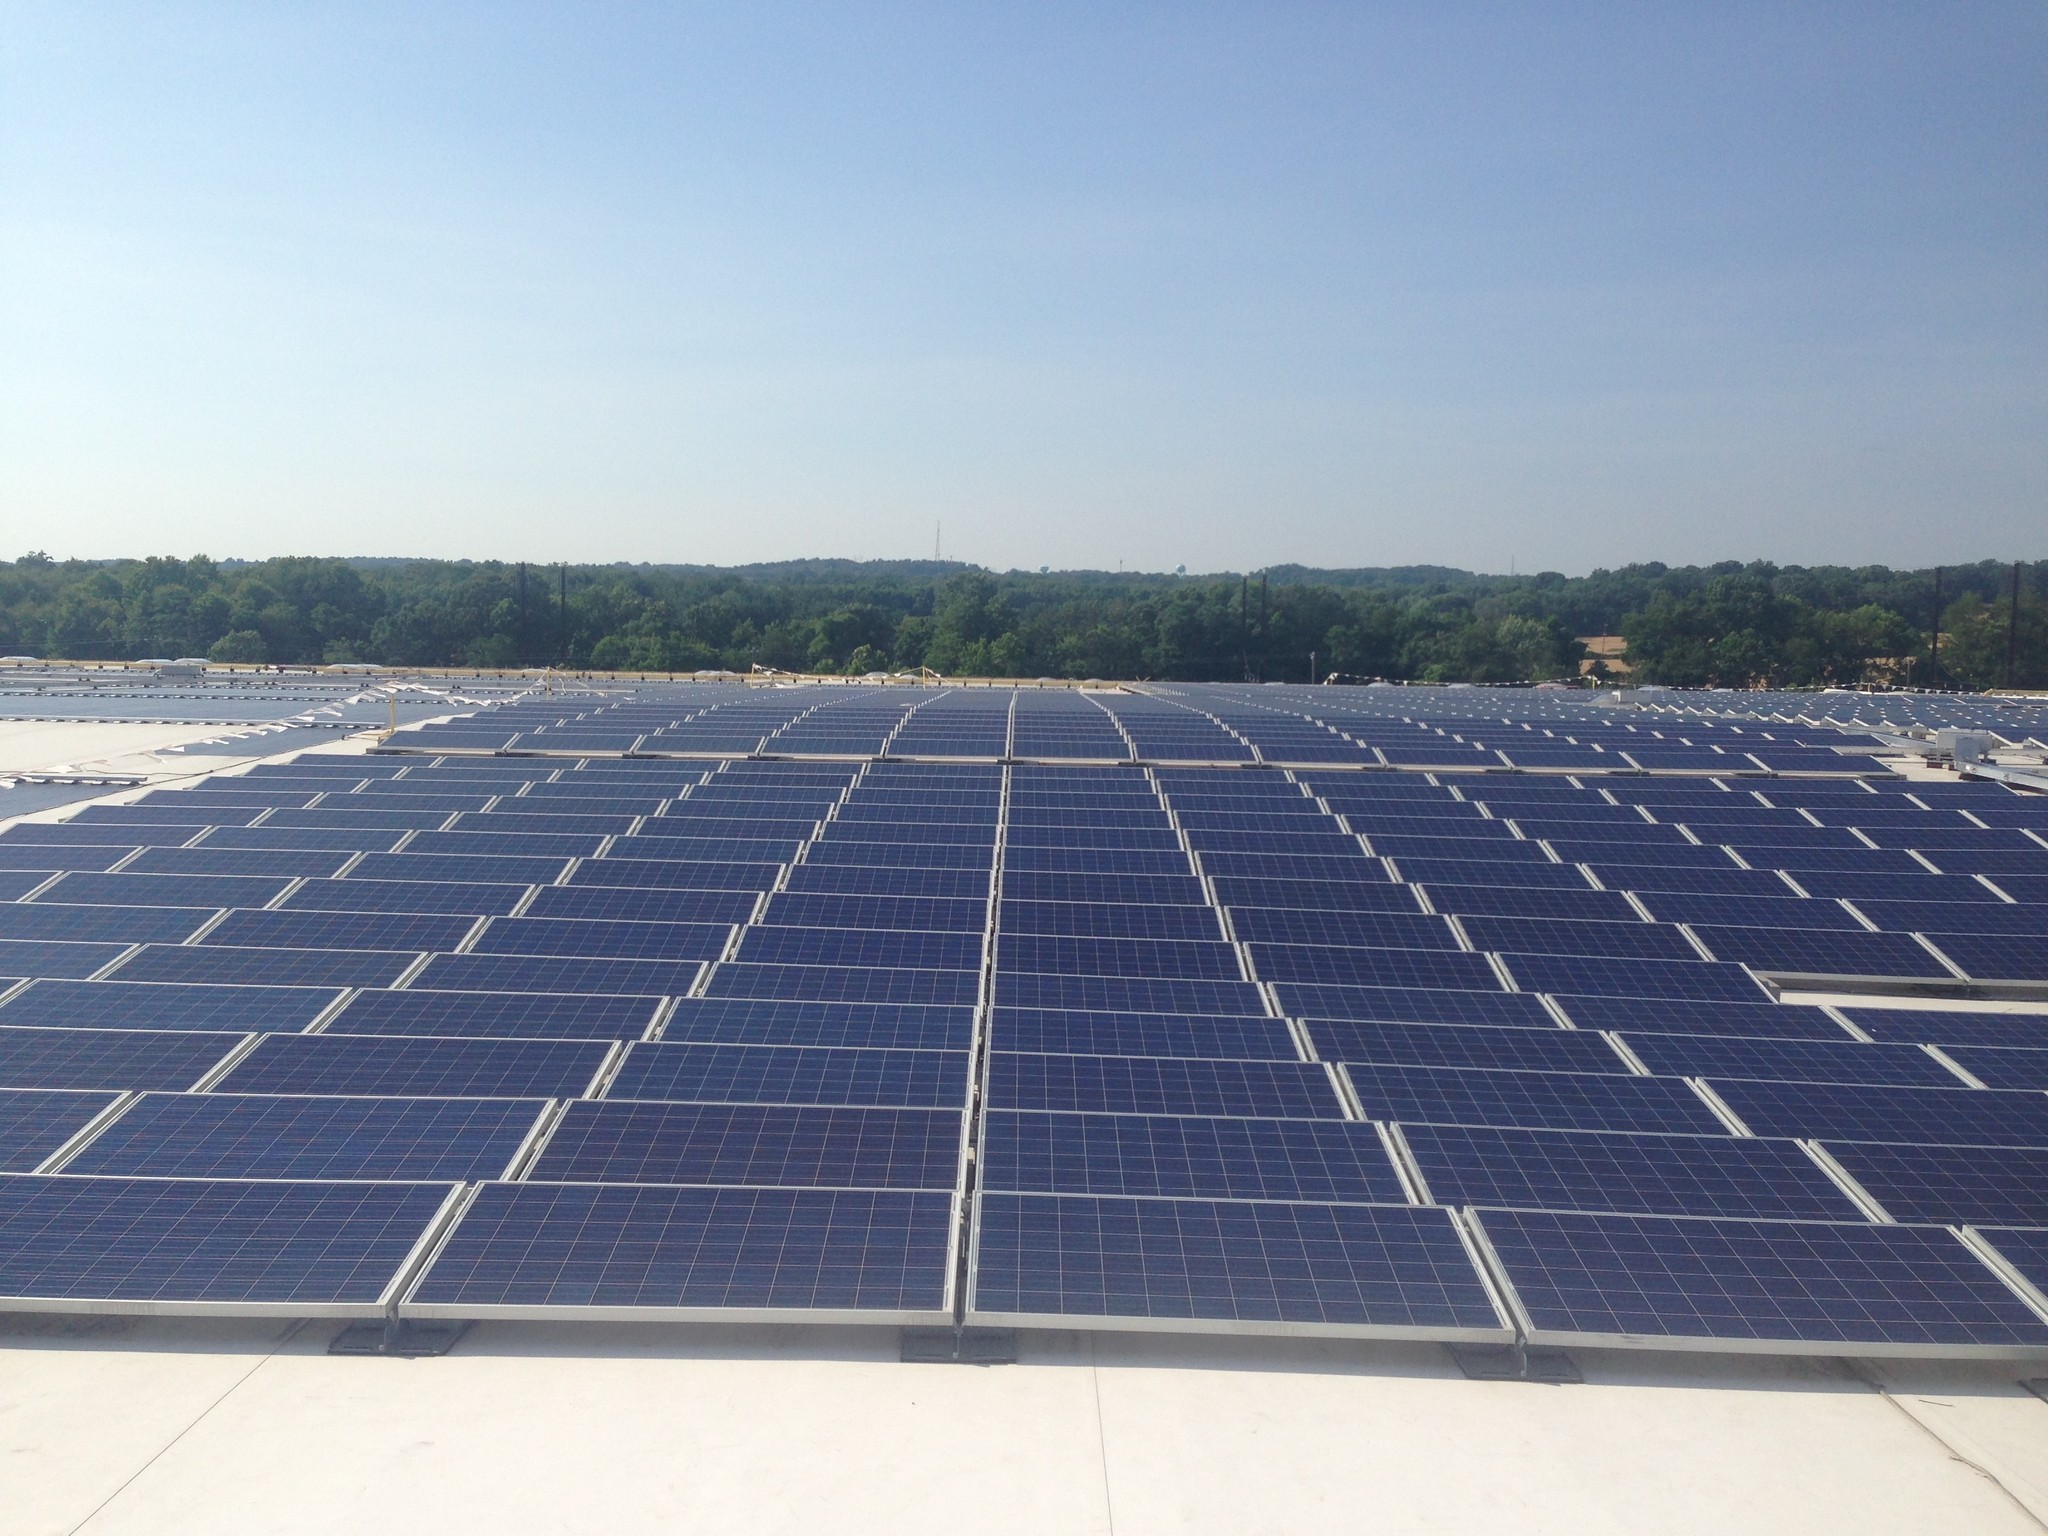 ikea expands rooftop solar panel system atop perryville distribution center baltimore sun. Black Bedroom Furniture Sets. Home Design Ideas